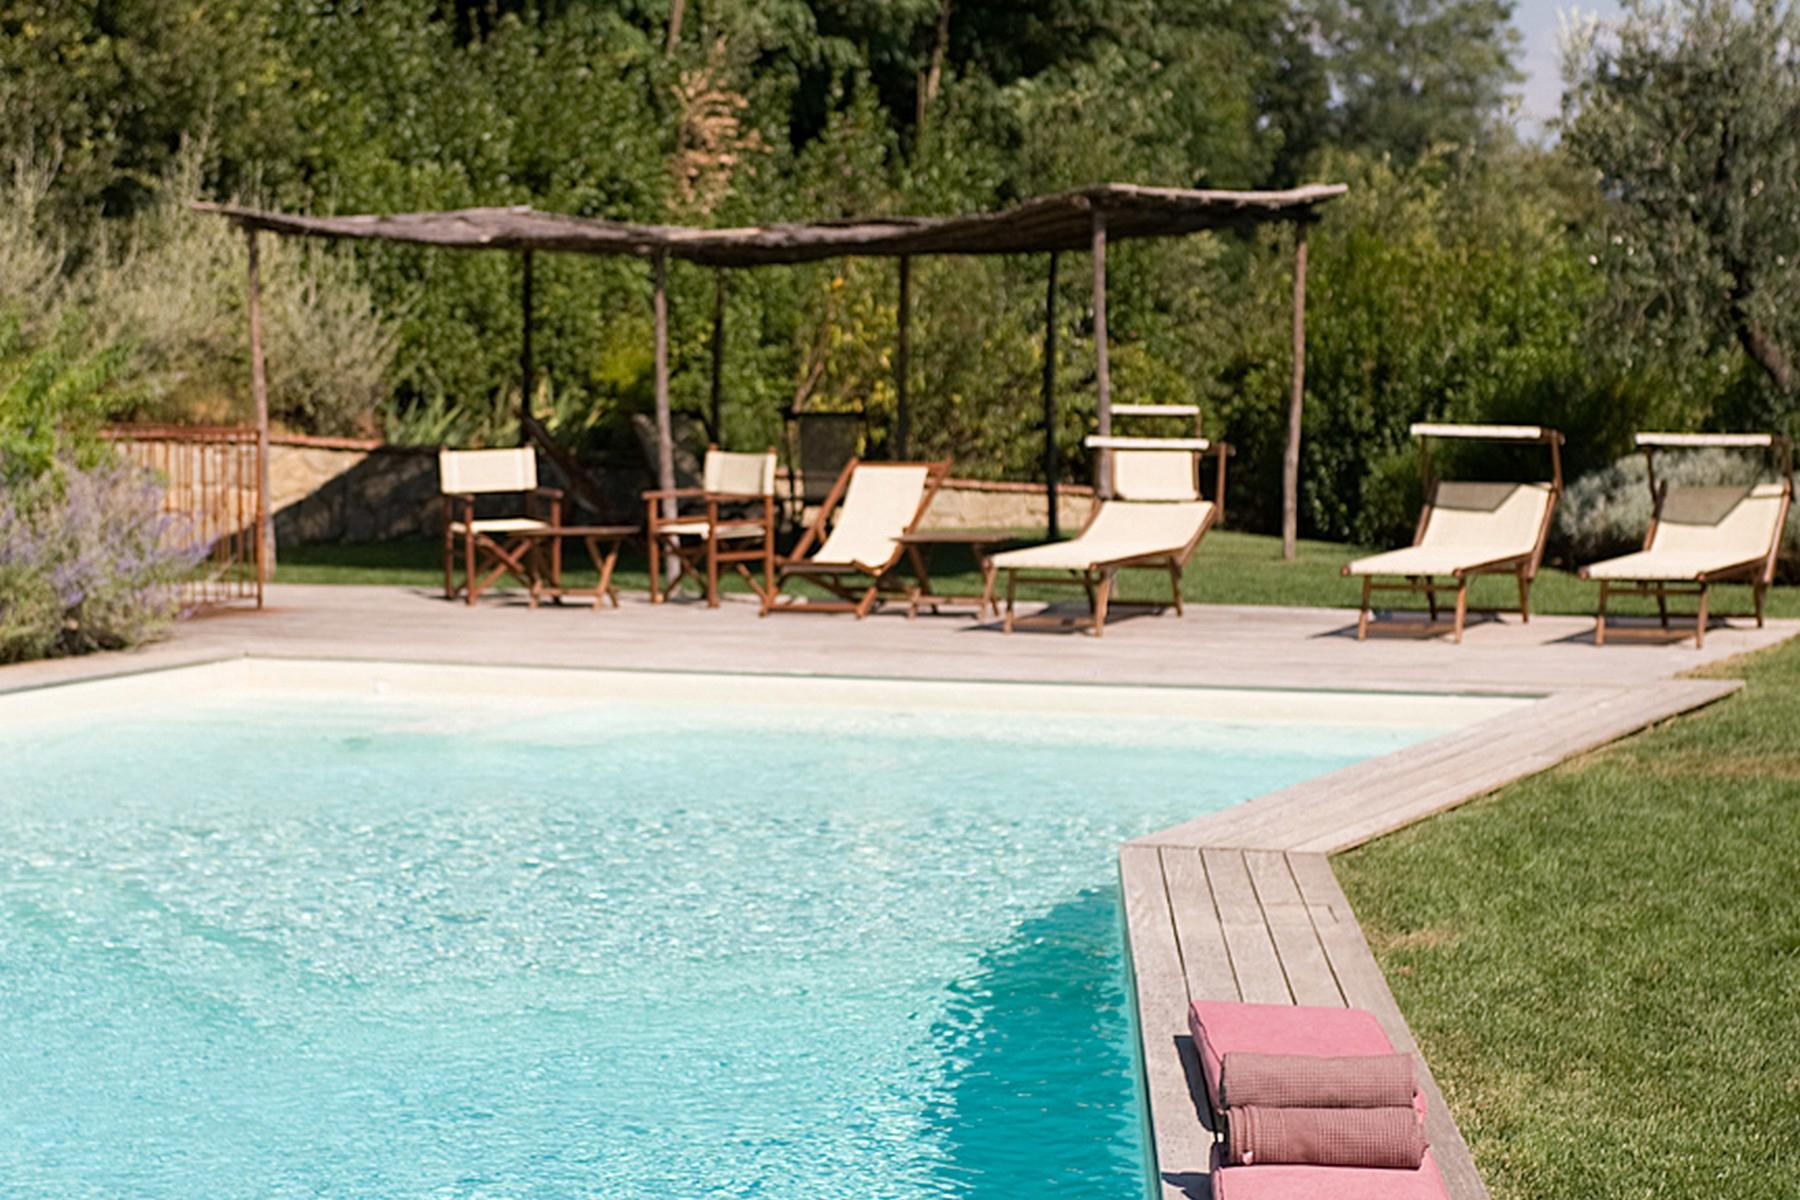 Farmhouse for sale in the Tuscan hills - 2